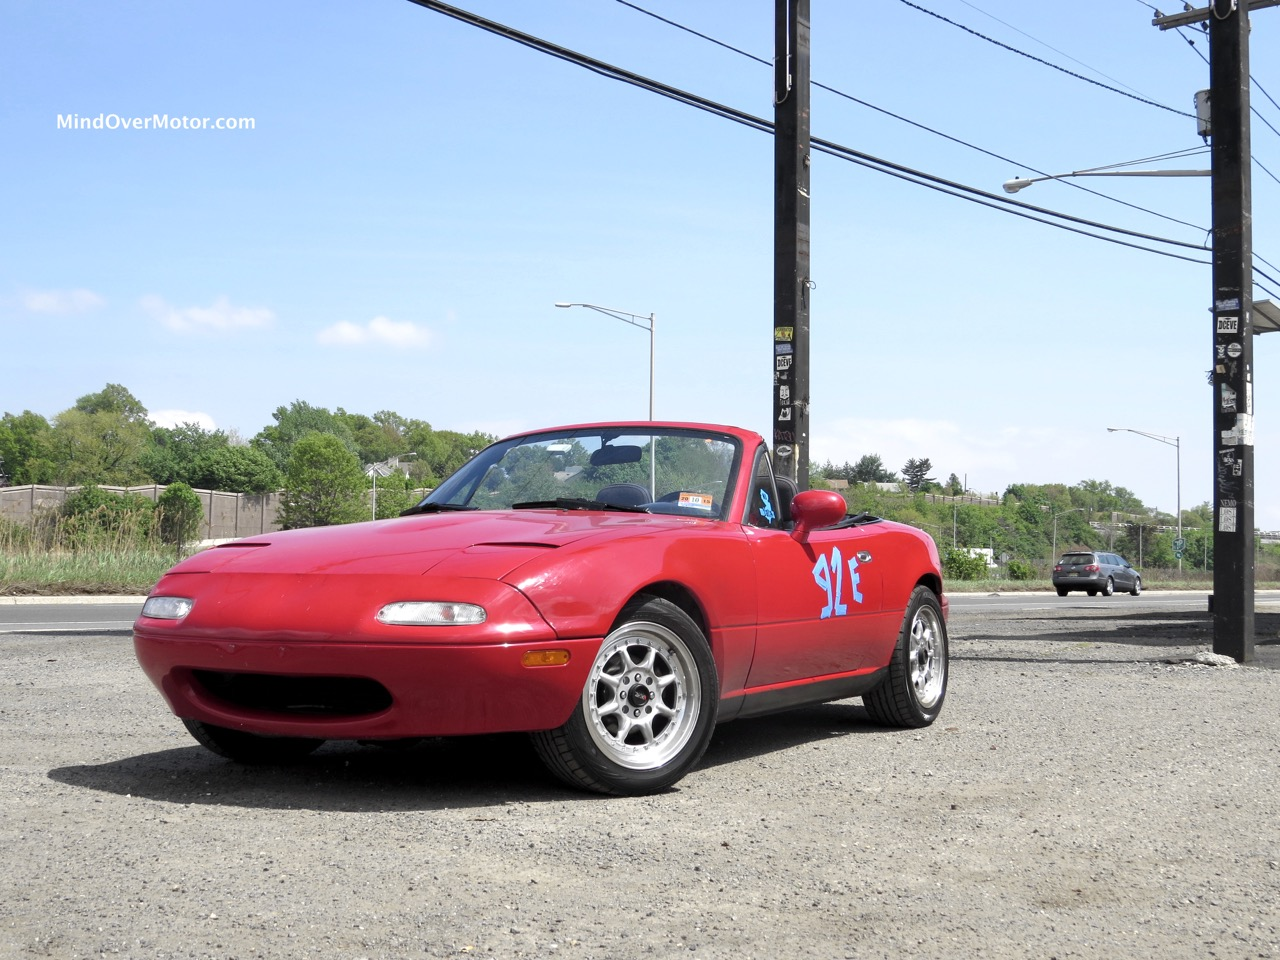 Miata Bada Bing Front no sign